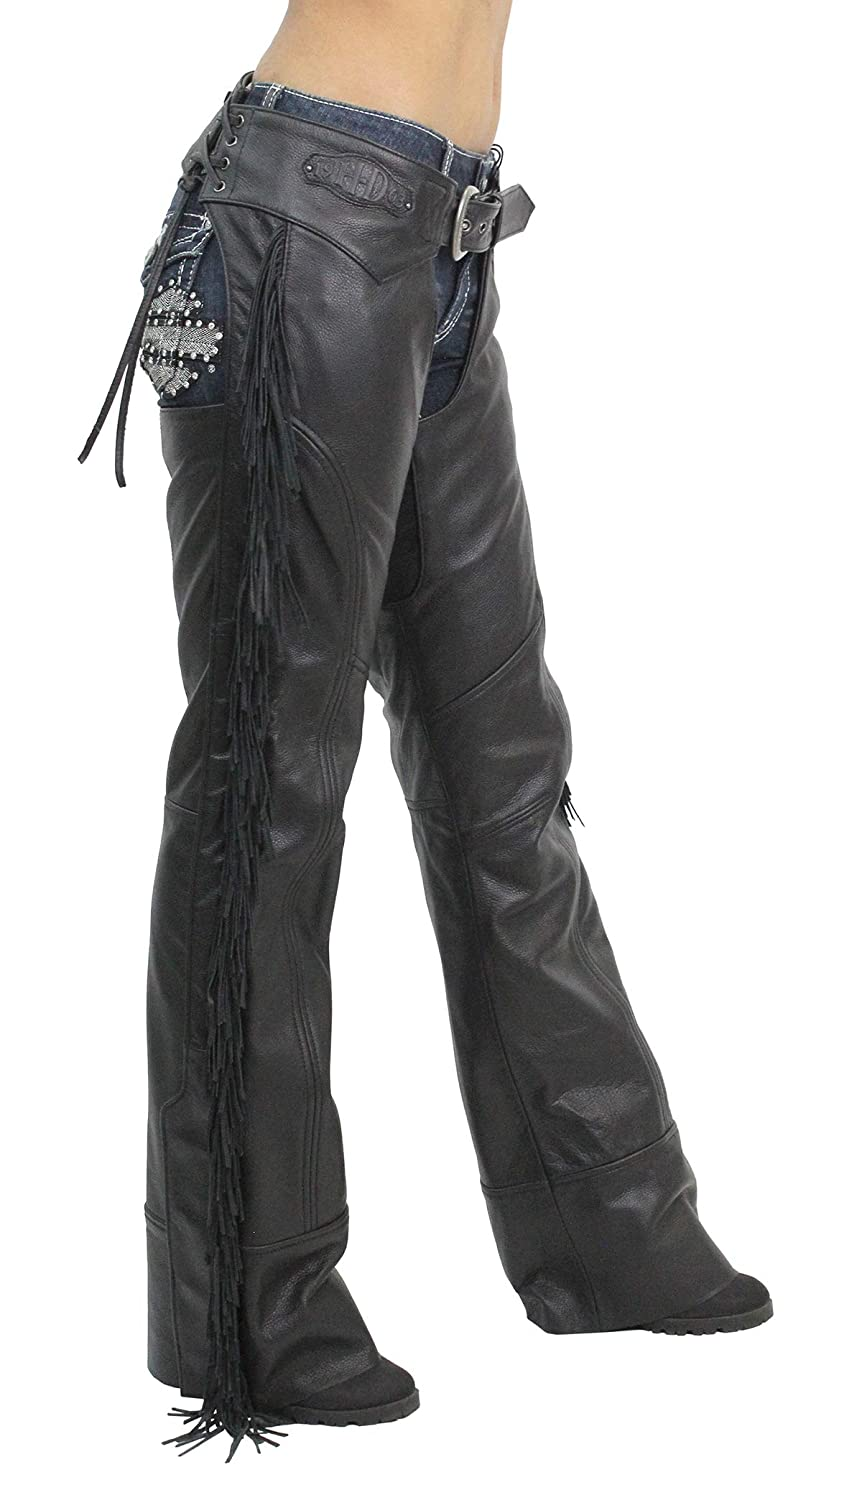 Harley-Davidson Womens Boone Fringed Winged B/&S Patch Chaps98012-18VW Large Tall